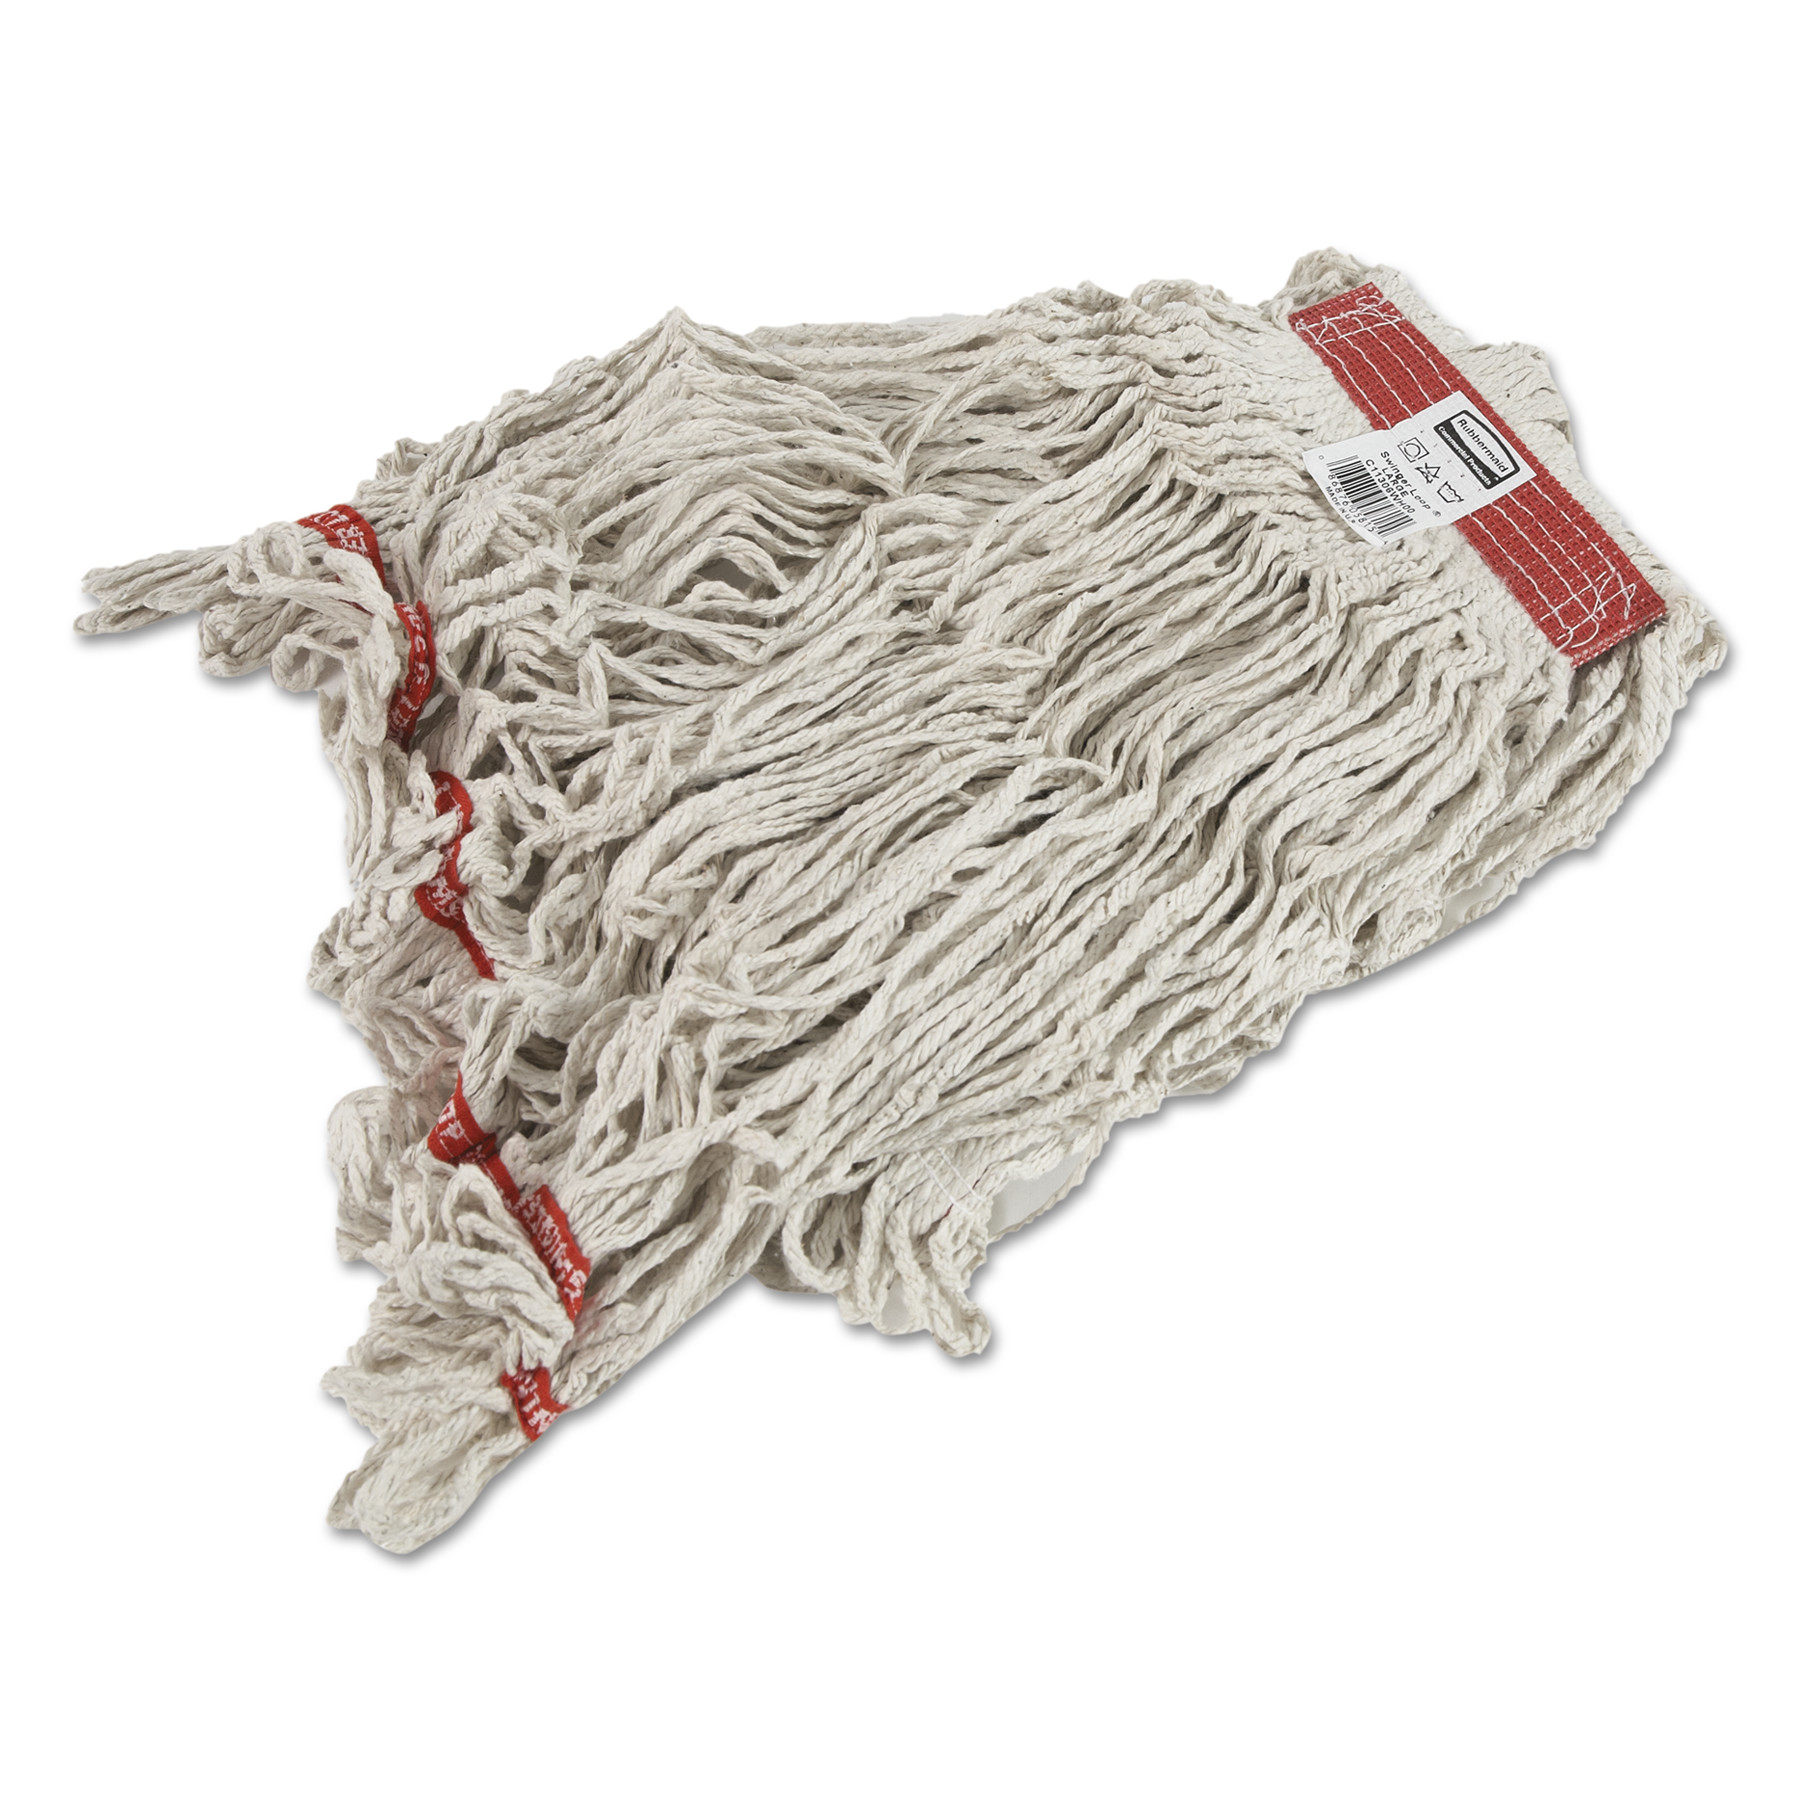 Rubbermaid Commercial Swinger Loop Wet Mop Heads, Cotton/Synthetic, White, X-Large, 6/Carton